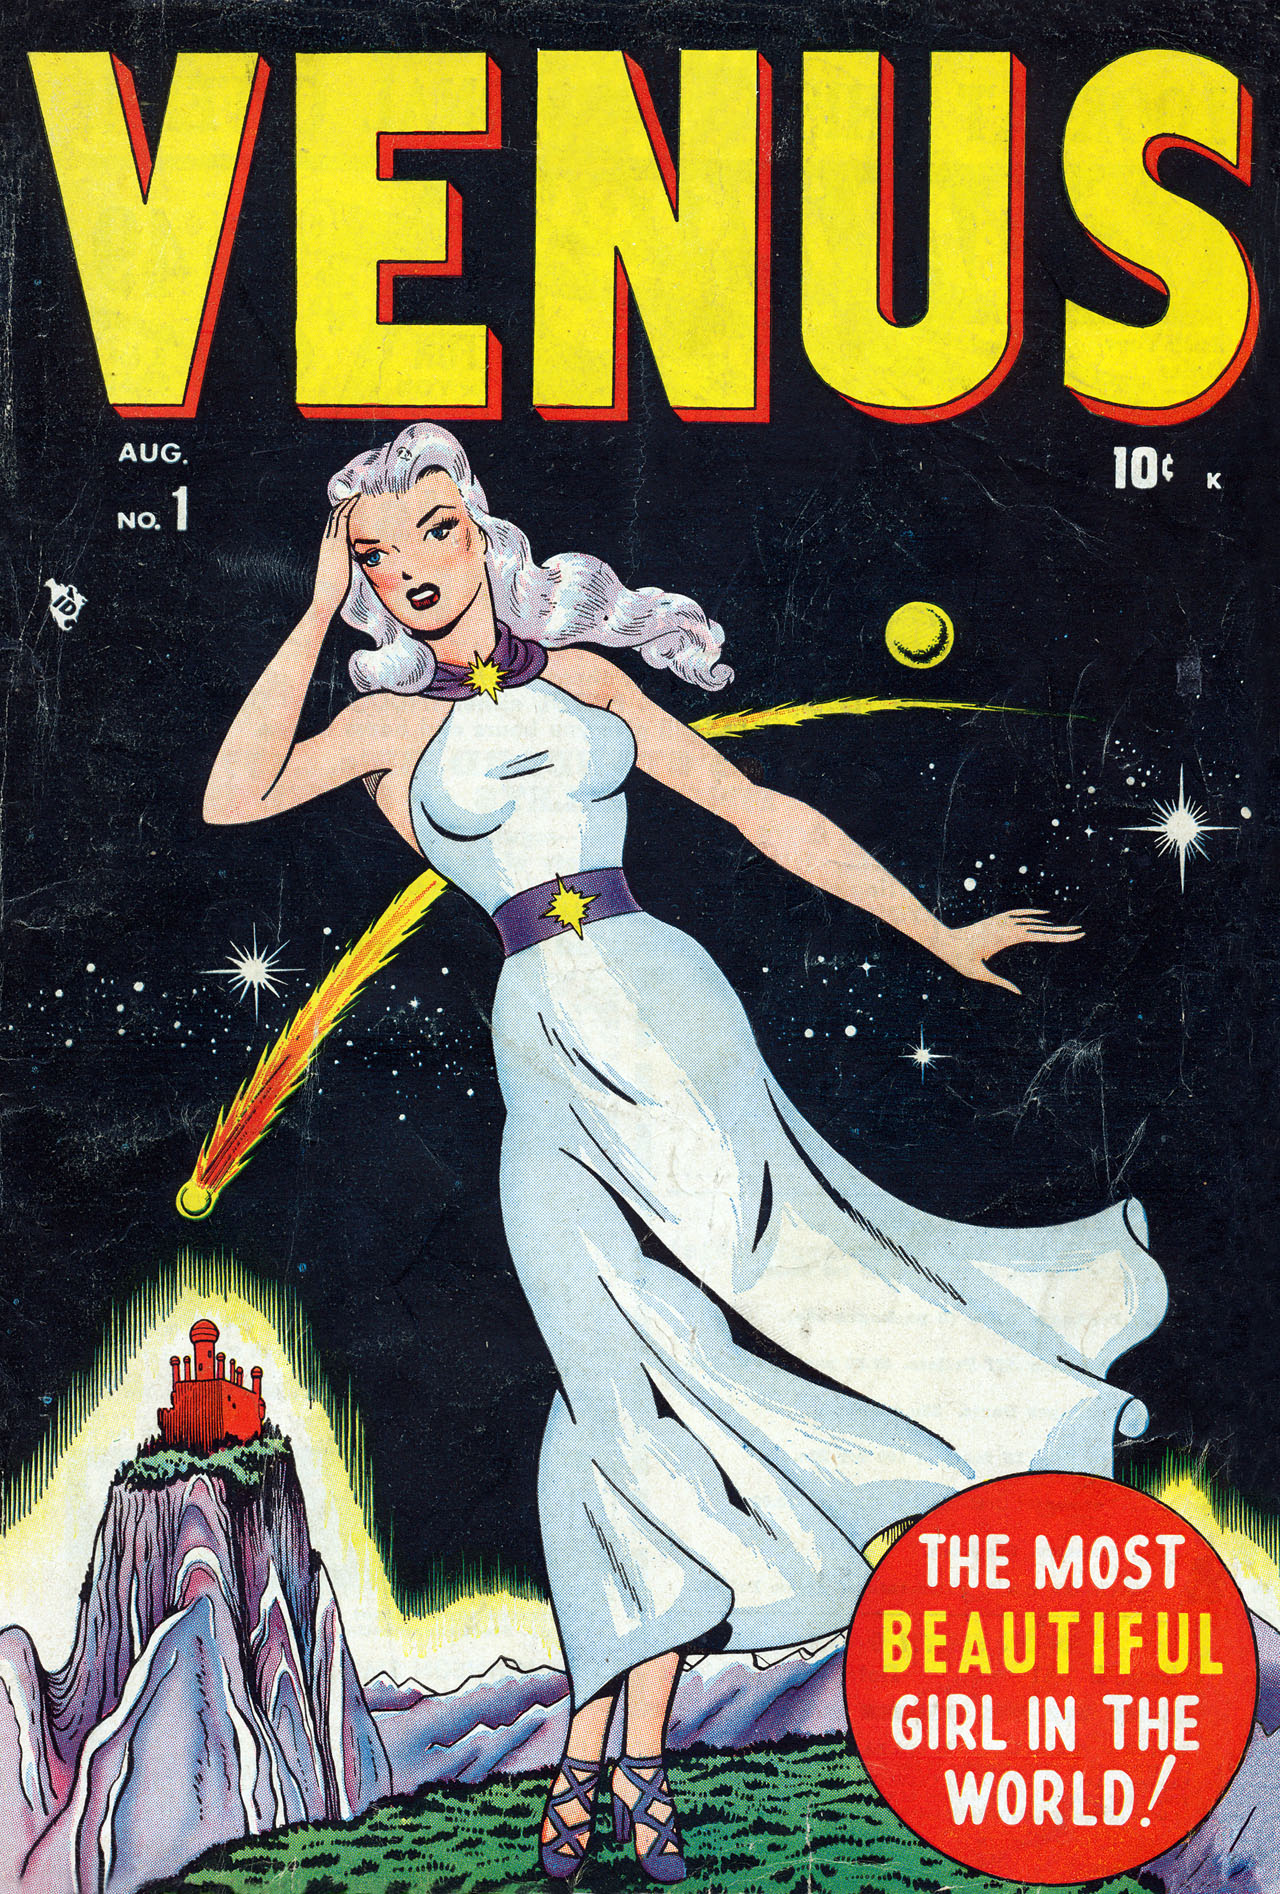 Venus (1948) #1, cover penciled by Ken Bald & inked by Lin Streeter.